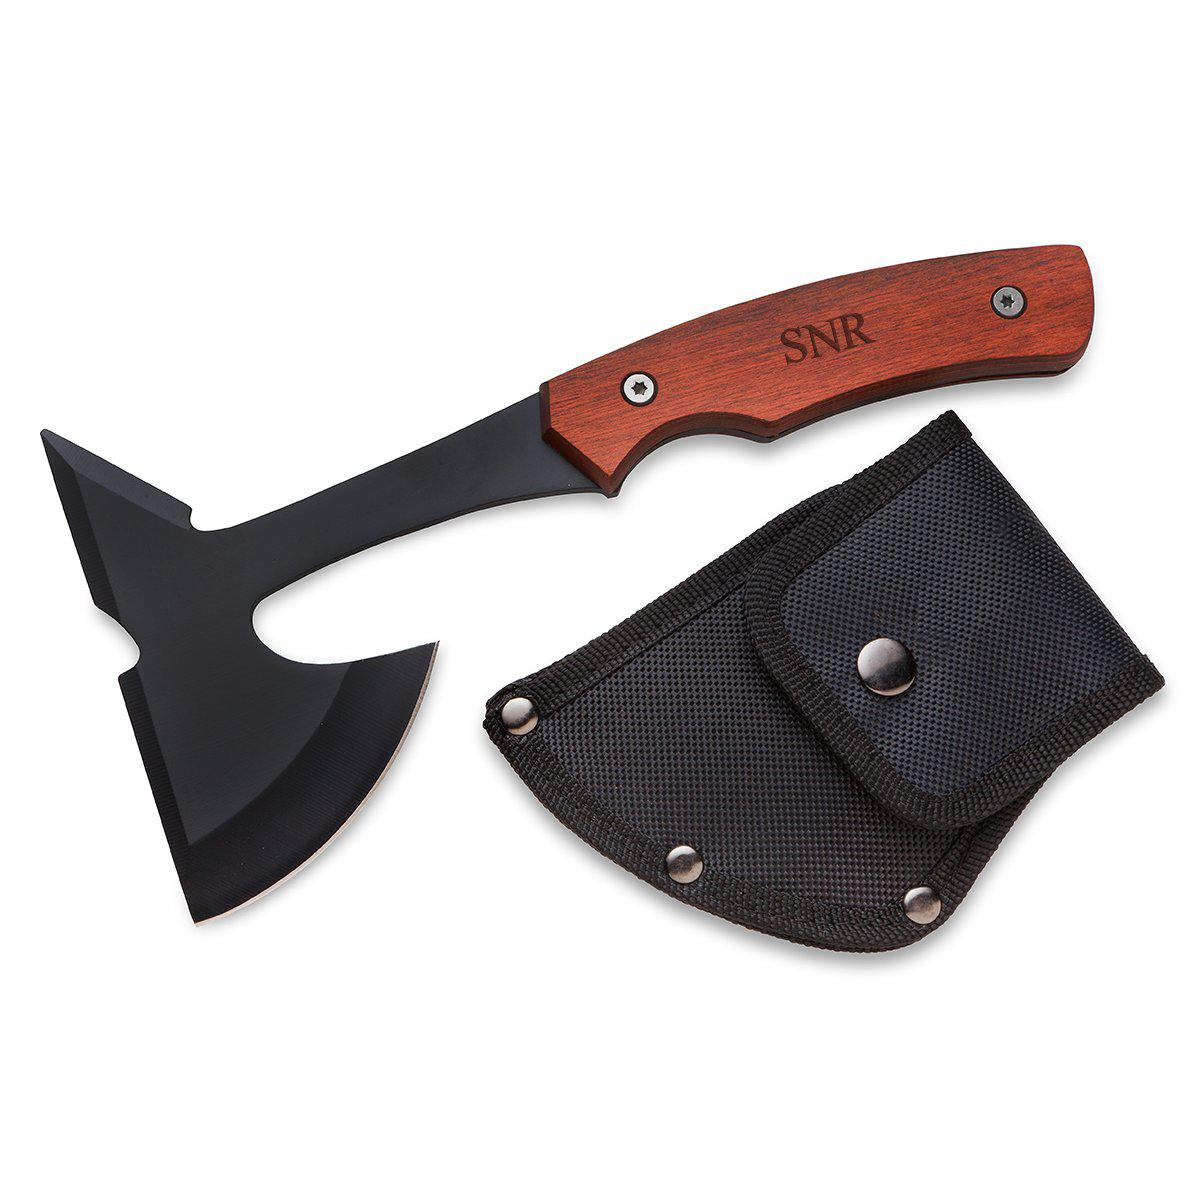 Personalized Set of 5 Saw Mountain Axes